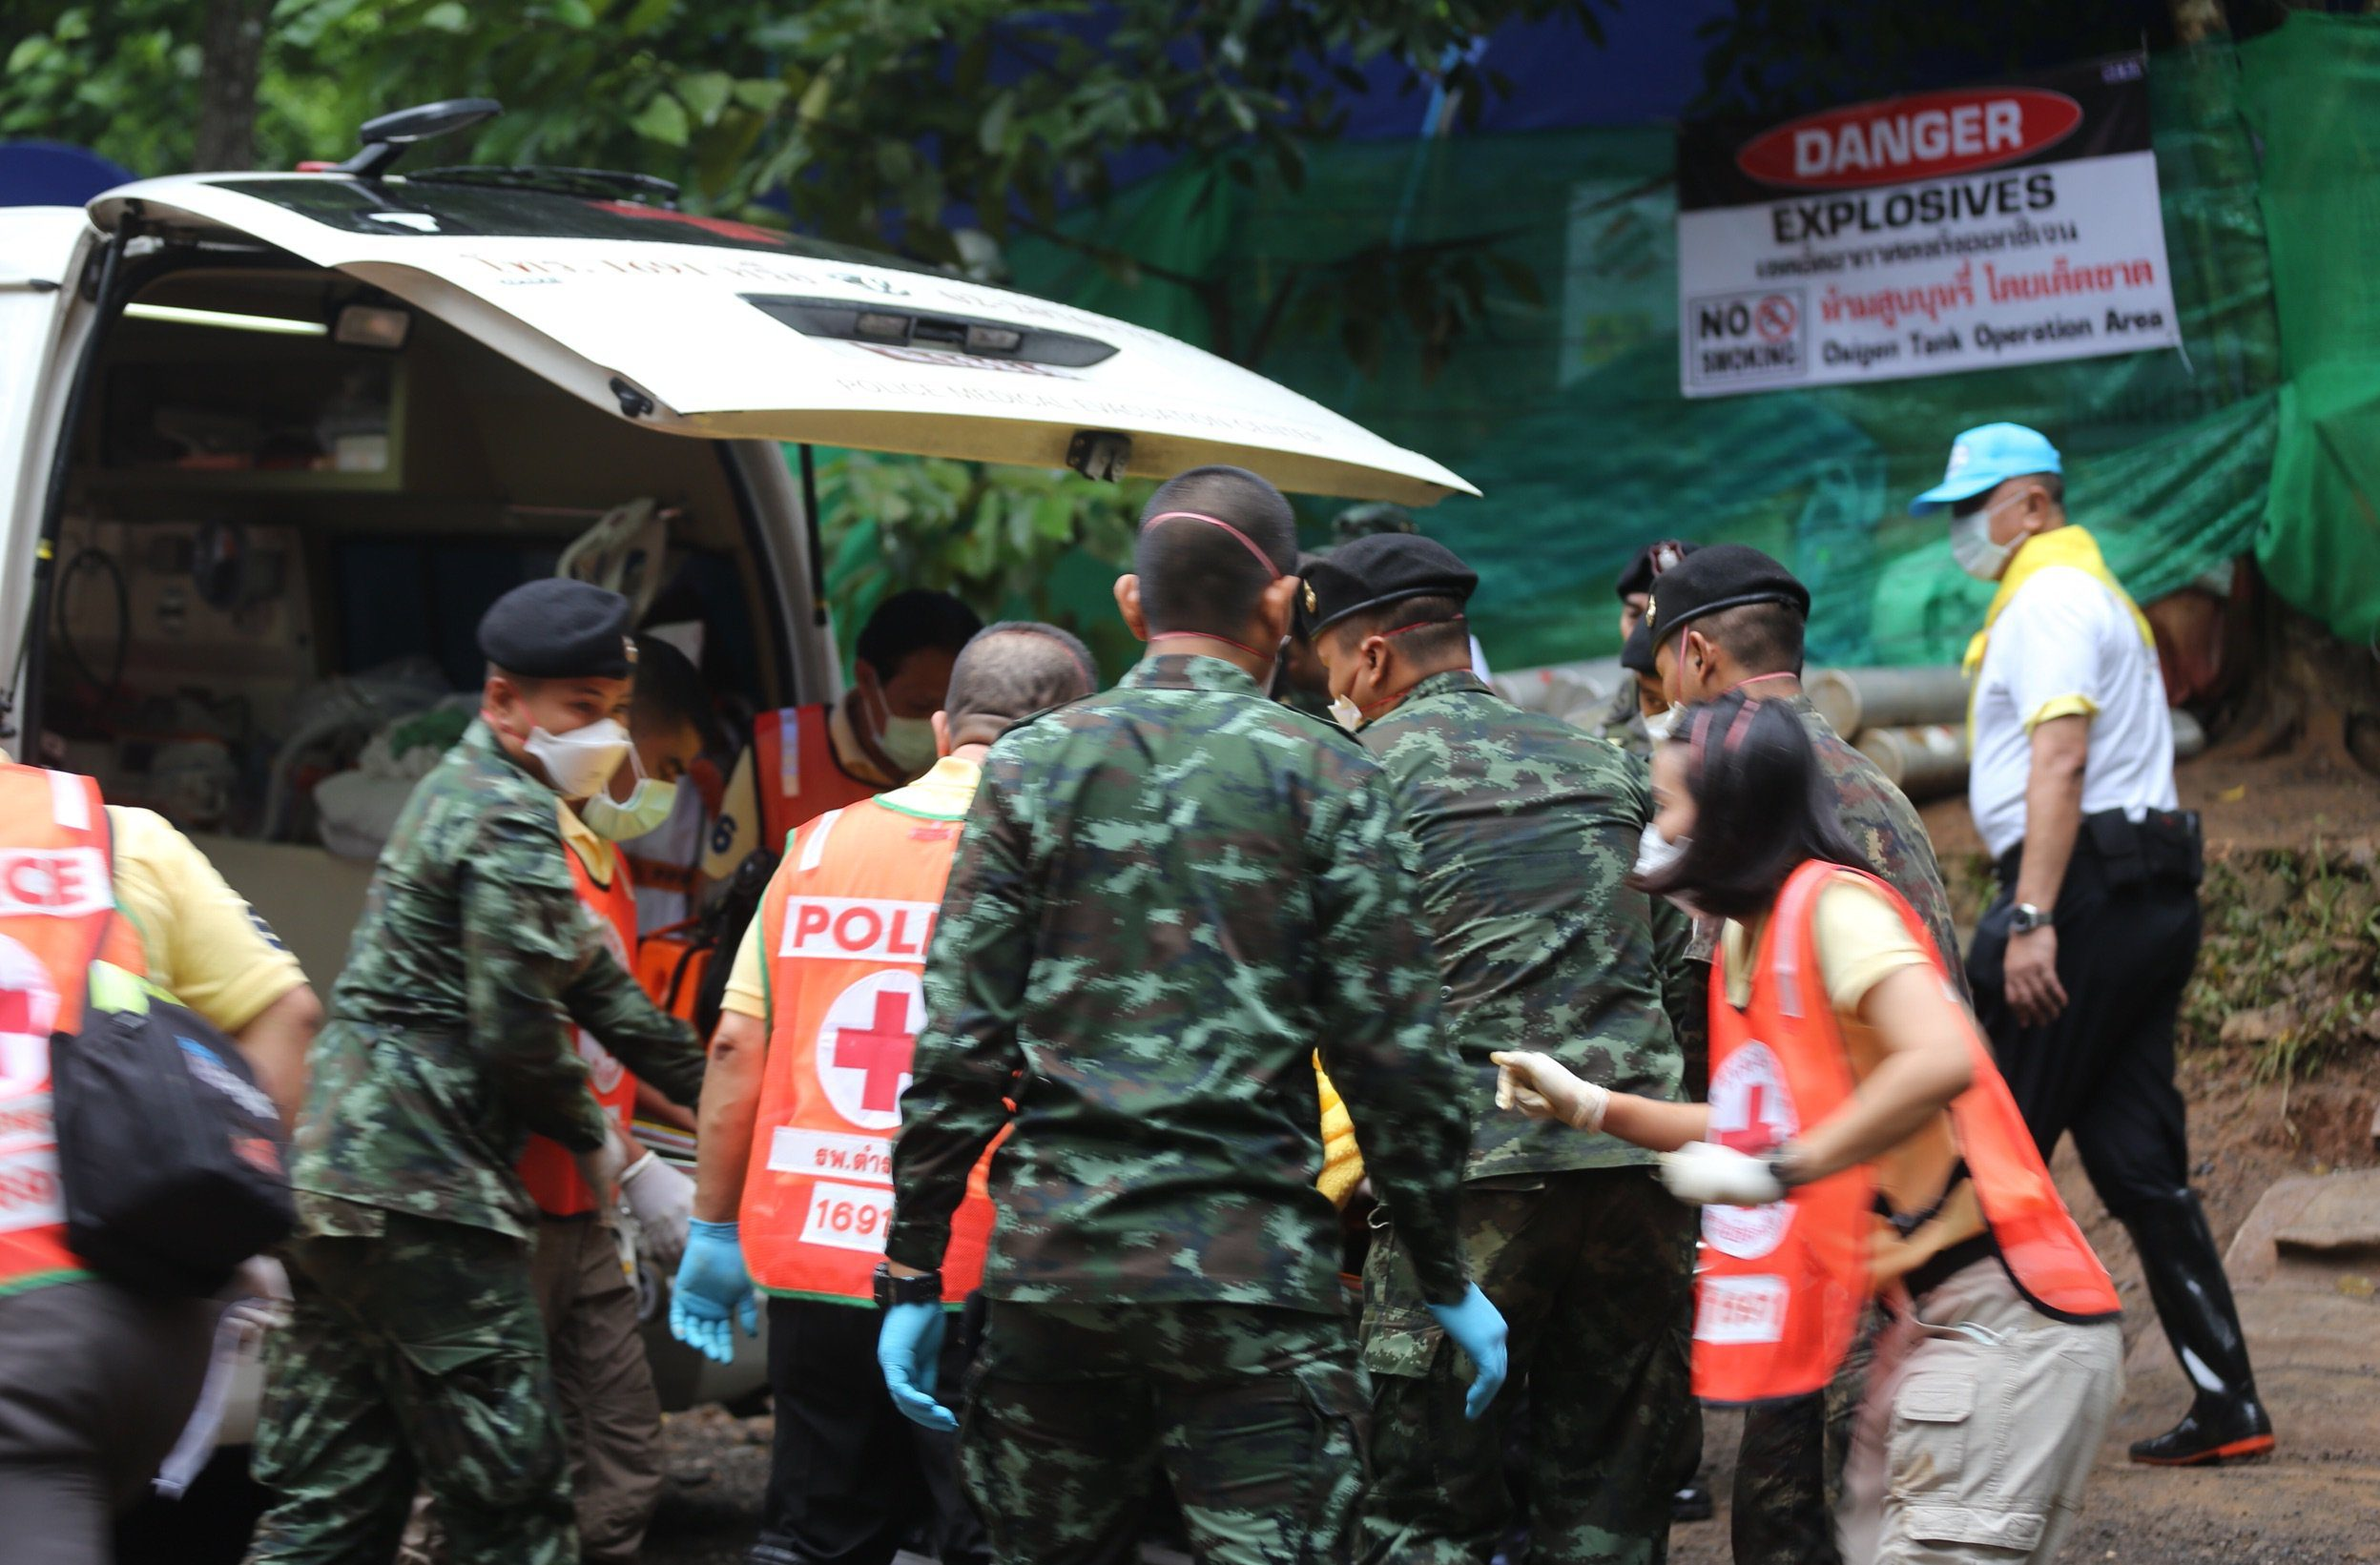 Mandatory Credit: Photo by Xinhua/REX/Shutterstock (9745650e) Rescuers transport rescued young soccer team members in Chiang Rai, Thailand Missing football team found alive in cave, Chiang Rai, Thailand - 08 Jul 2018 Four boys of 13 trapped in a northern Thailand cave have been brought out through an underwater evacuation, a member of the rescue team said on condition of anonymity Sunday.